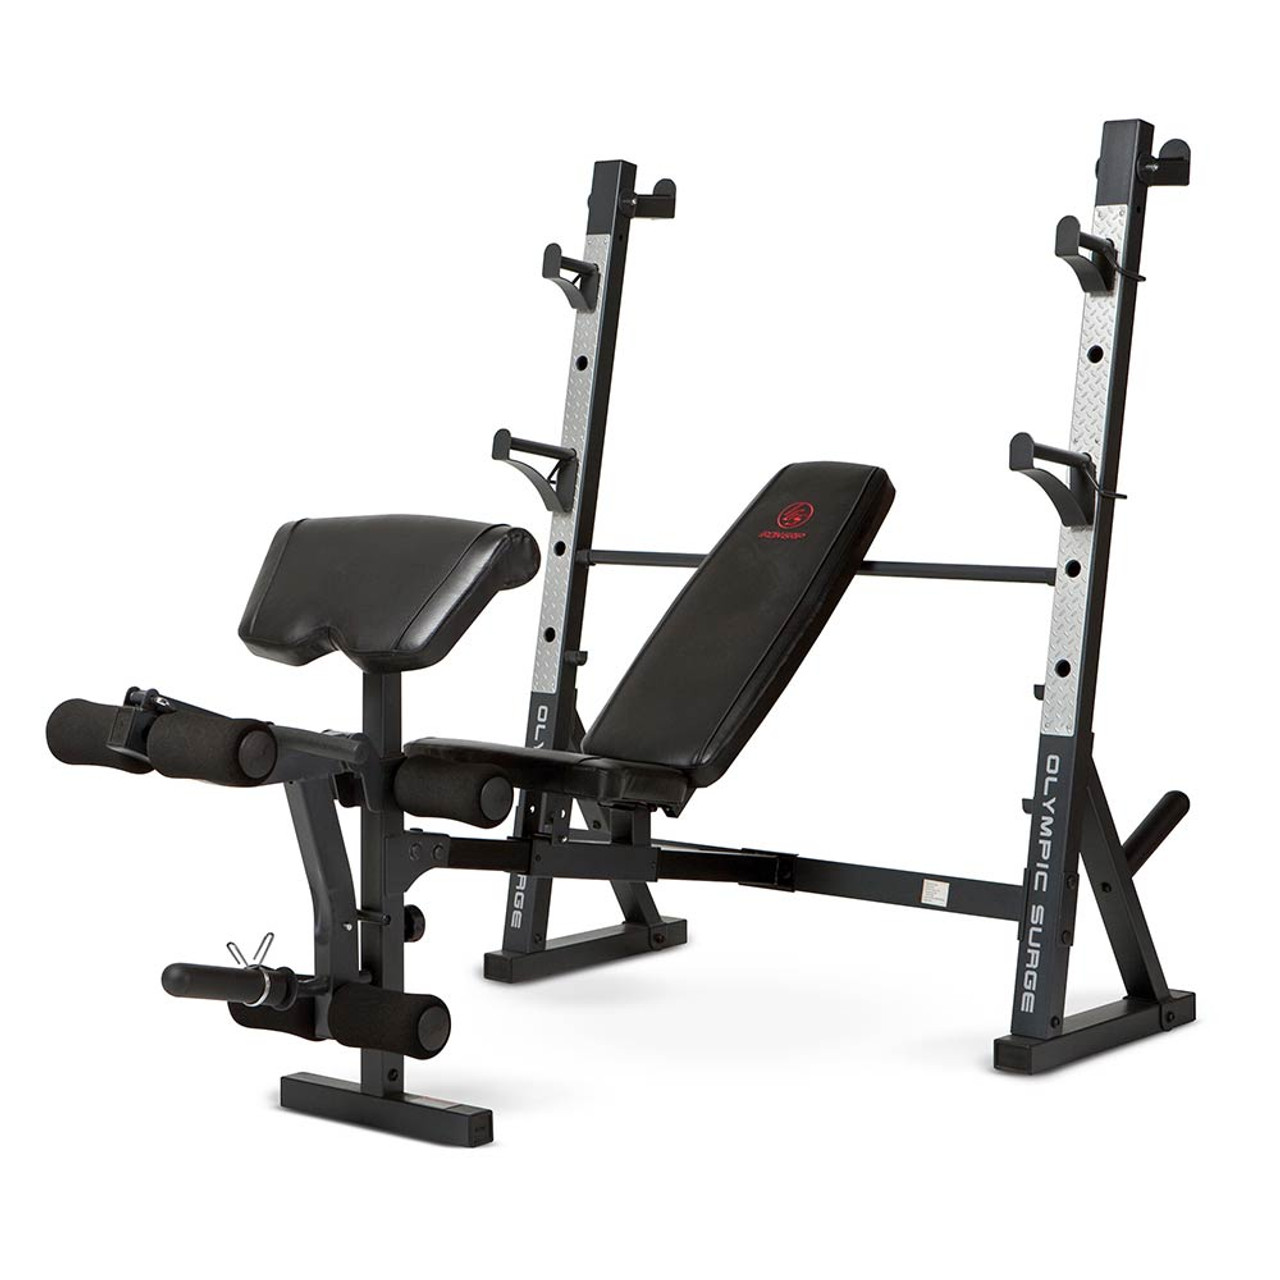 products weights lrg weightlifting lift with olympic bench power benches weight category ob product flat